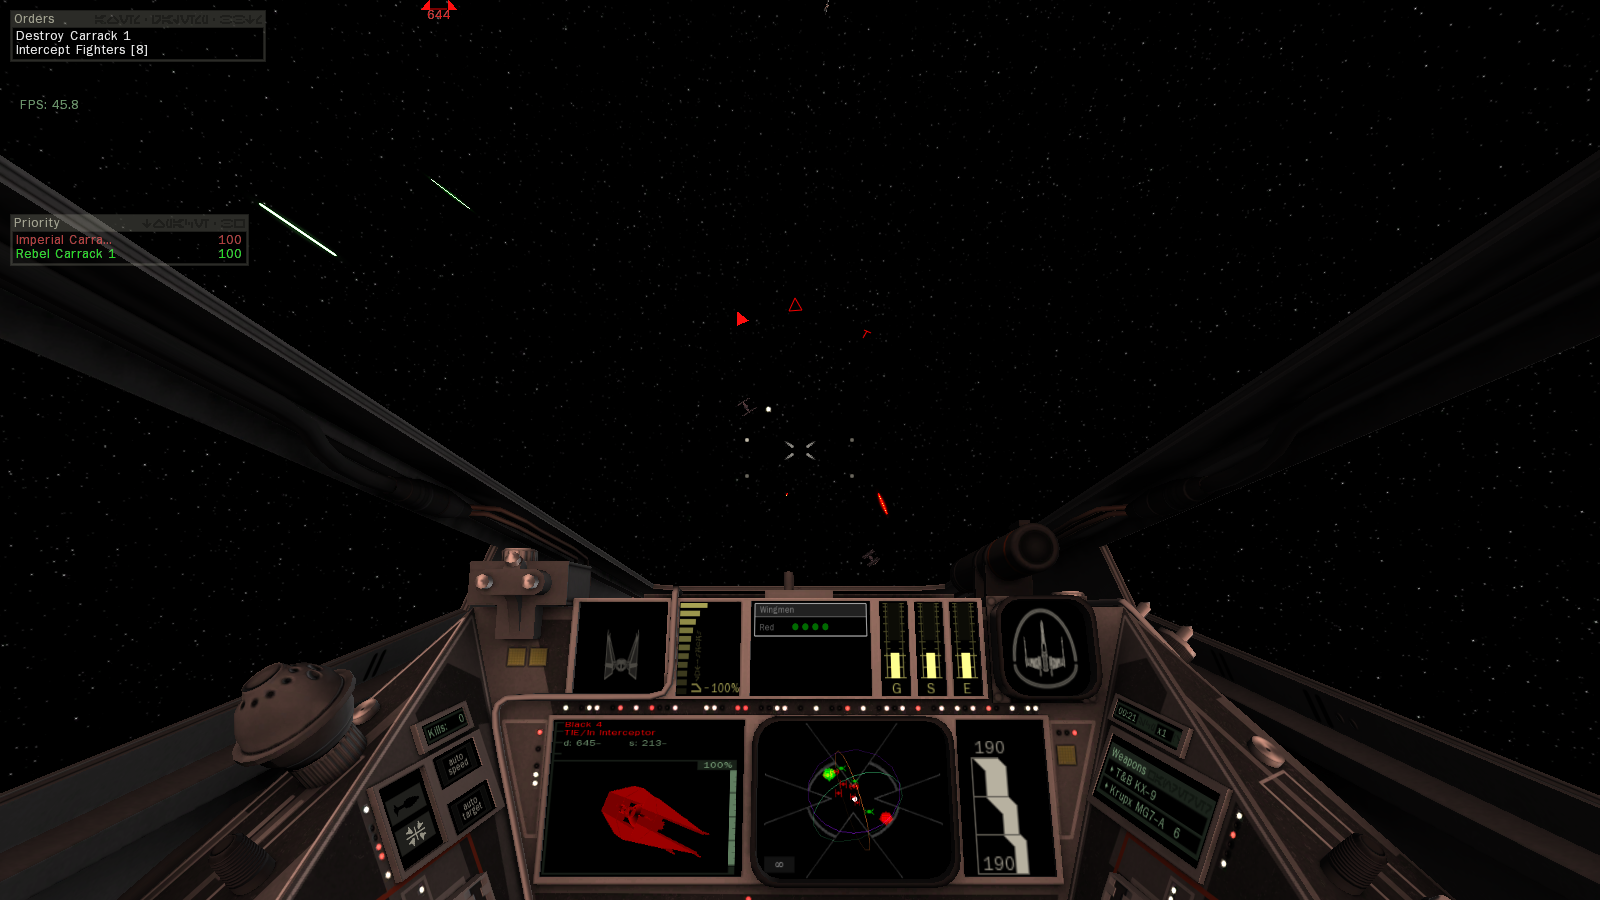 X Wing Cockpit Image Fate Of The Galaxy Mod Db